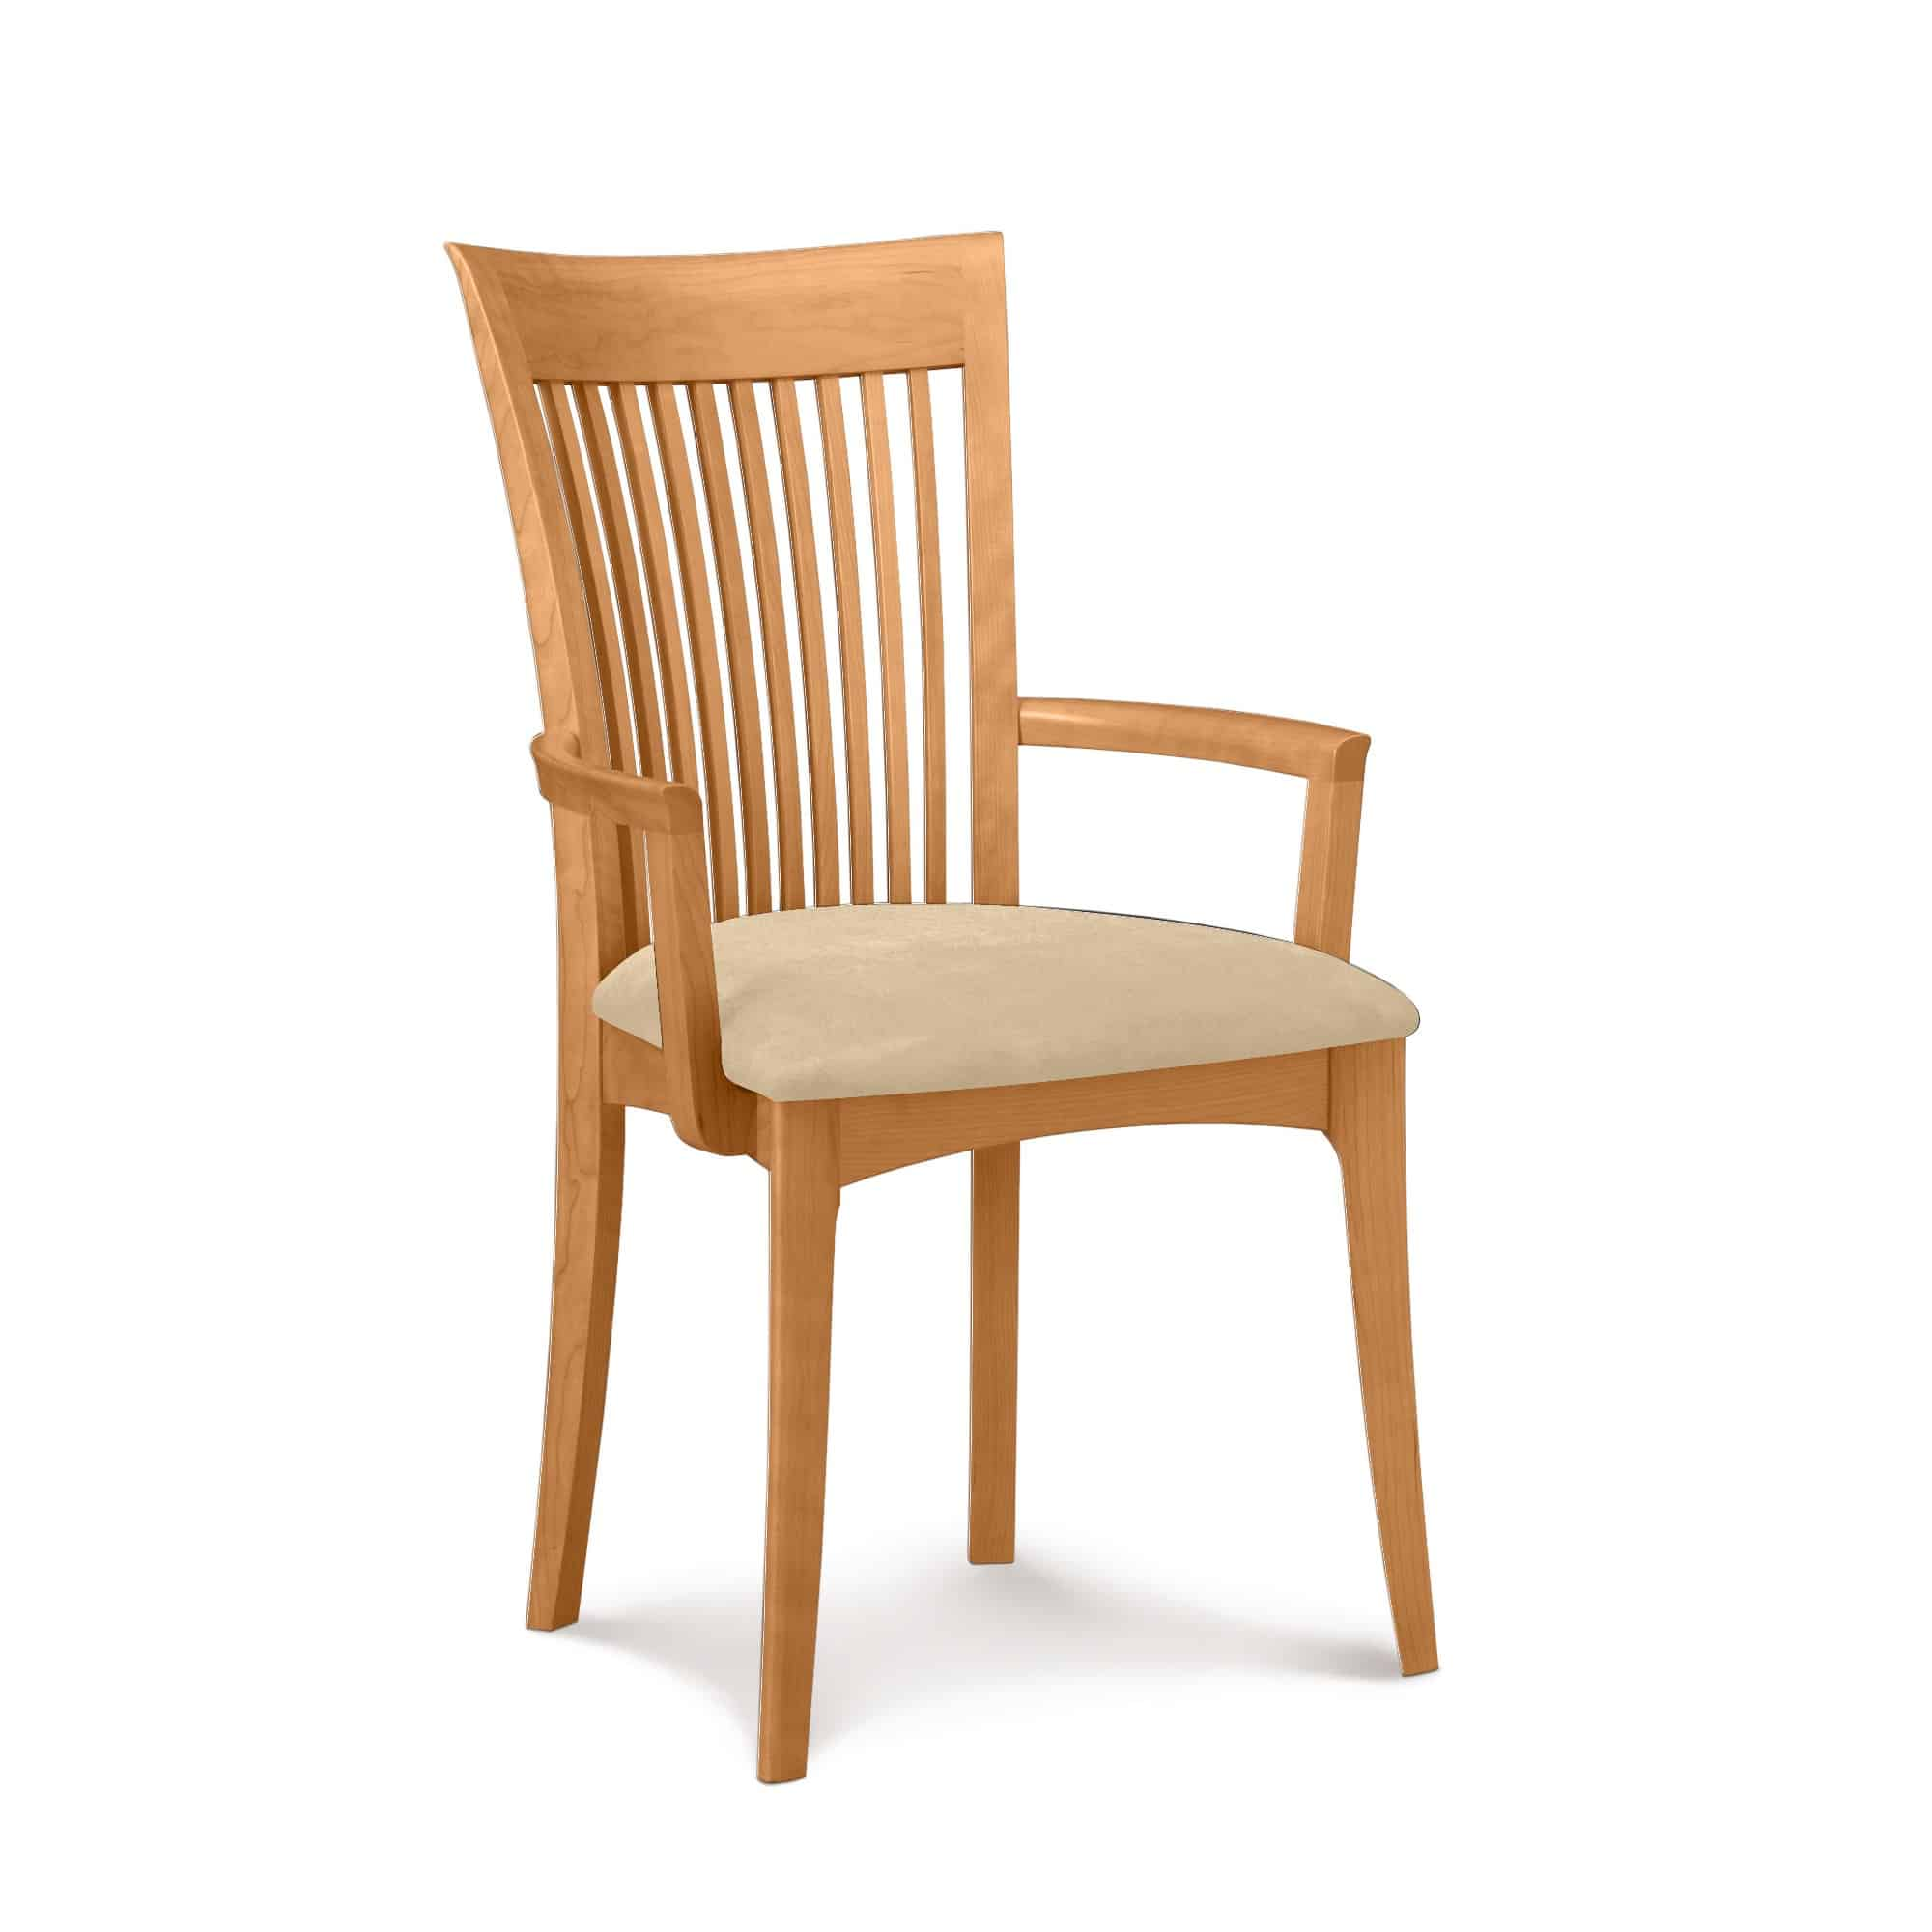 Copeland Greenguard GOLD Certified Chairs